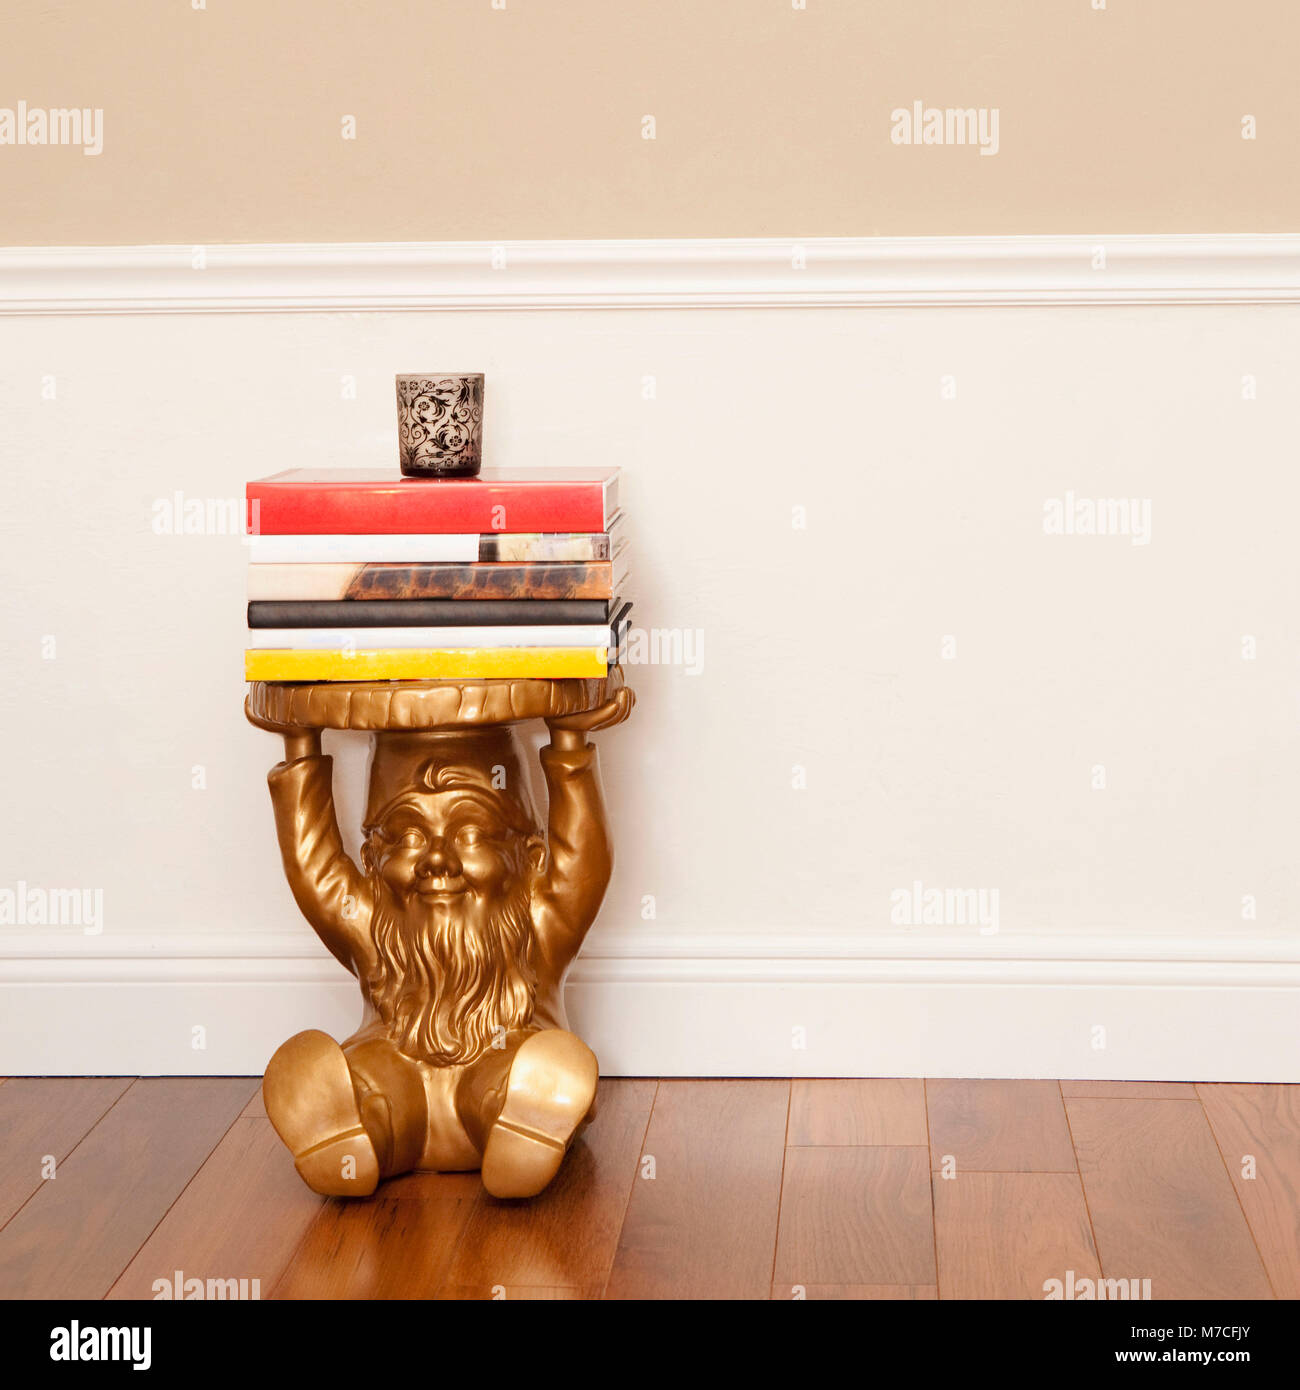 Stack of books on a stool - Stock Image